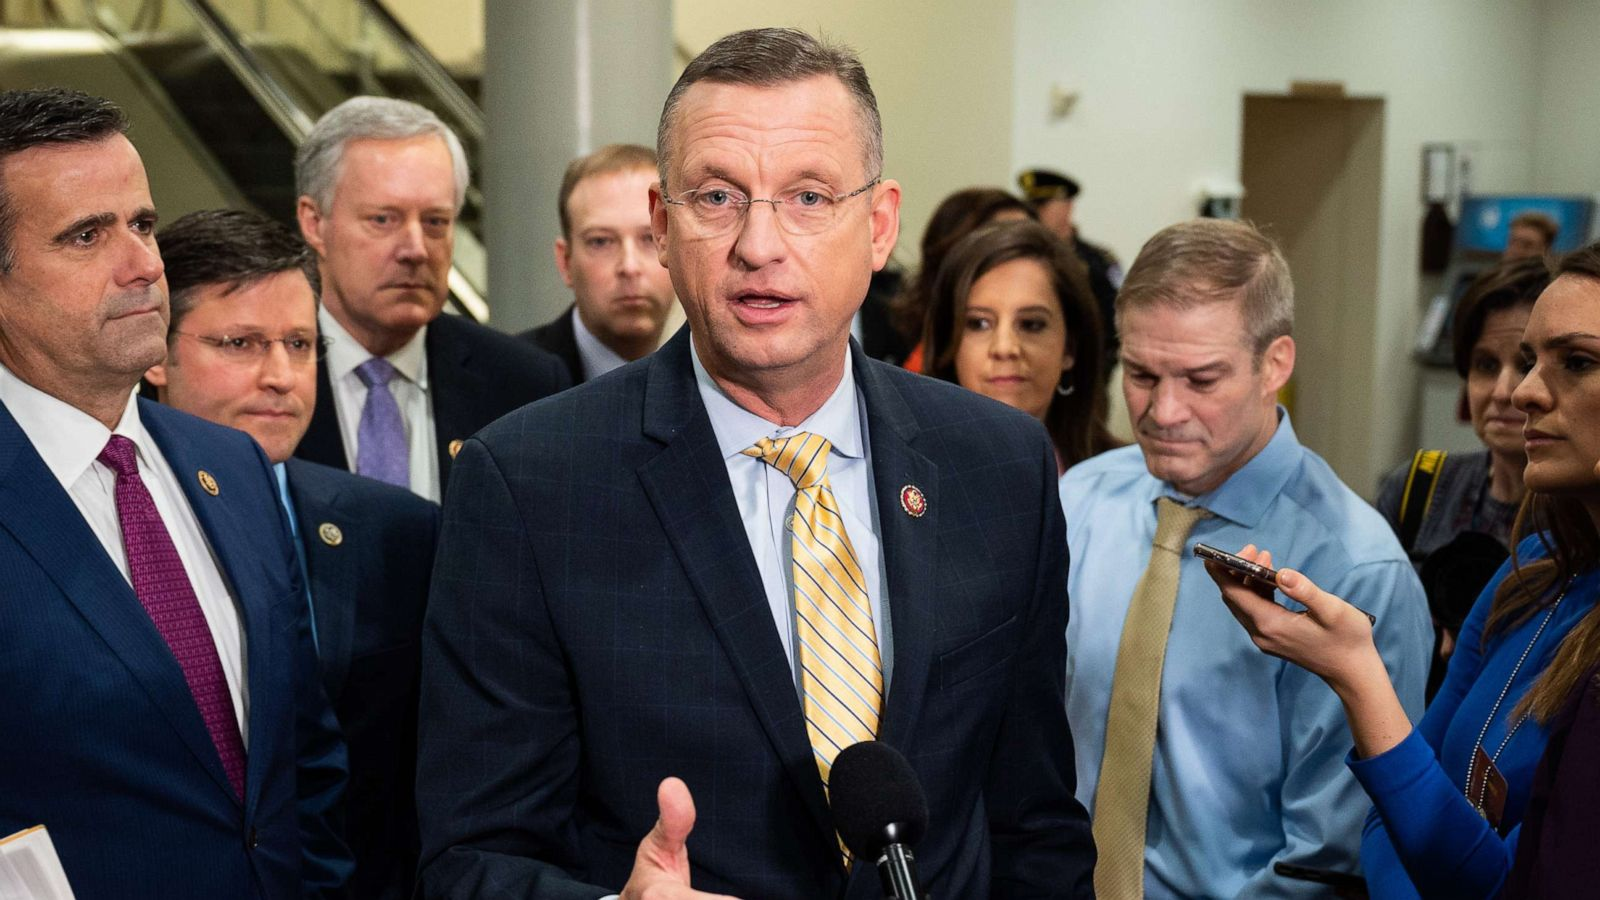 Rep. Doug Collins announces Senate bid for Georgia special election, setting up clash within GOP - ABC News